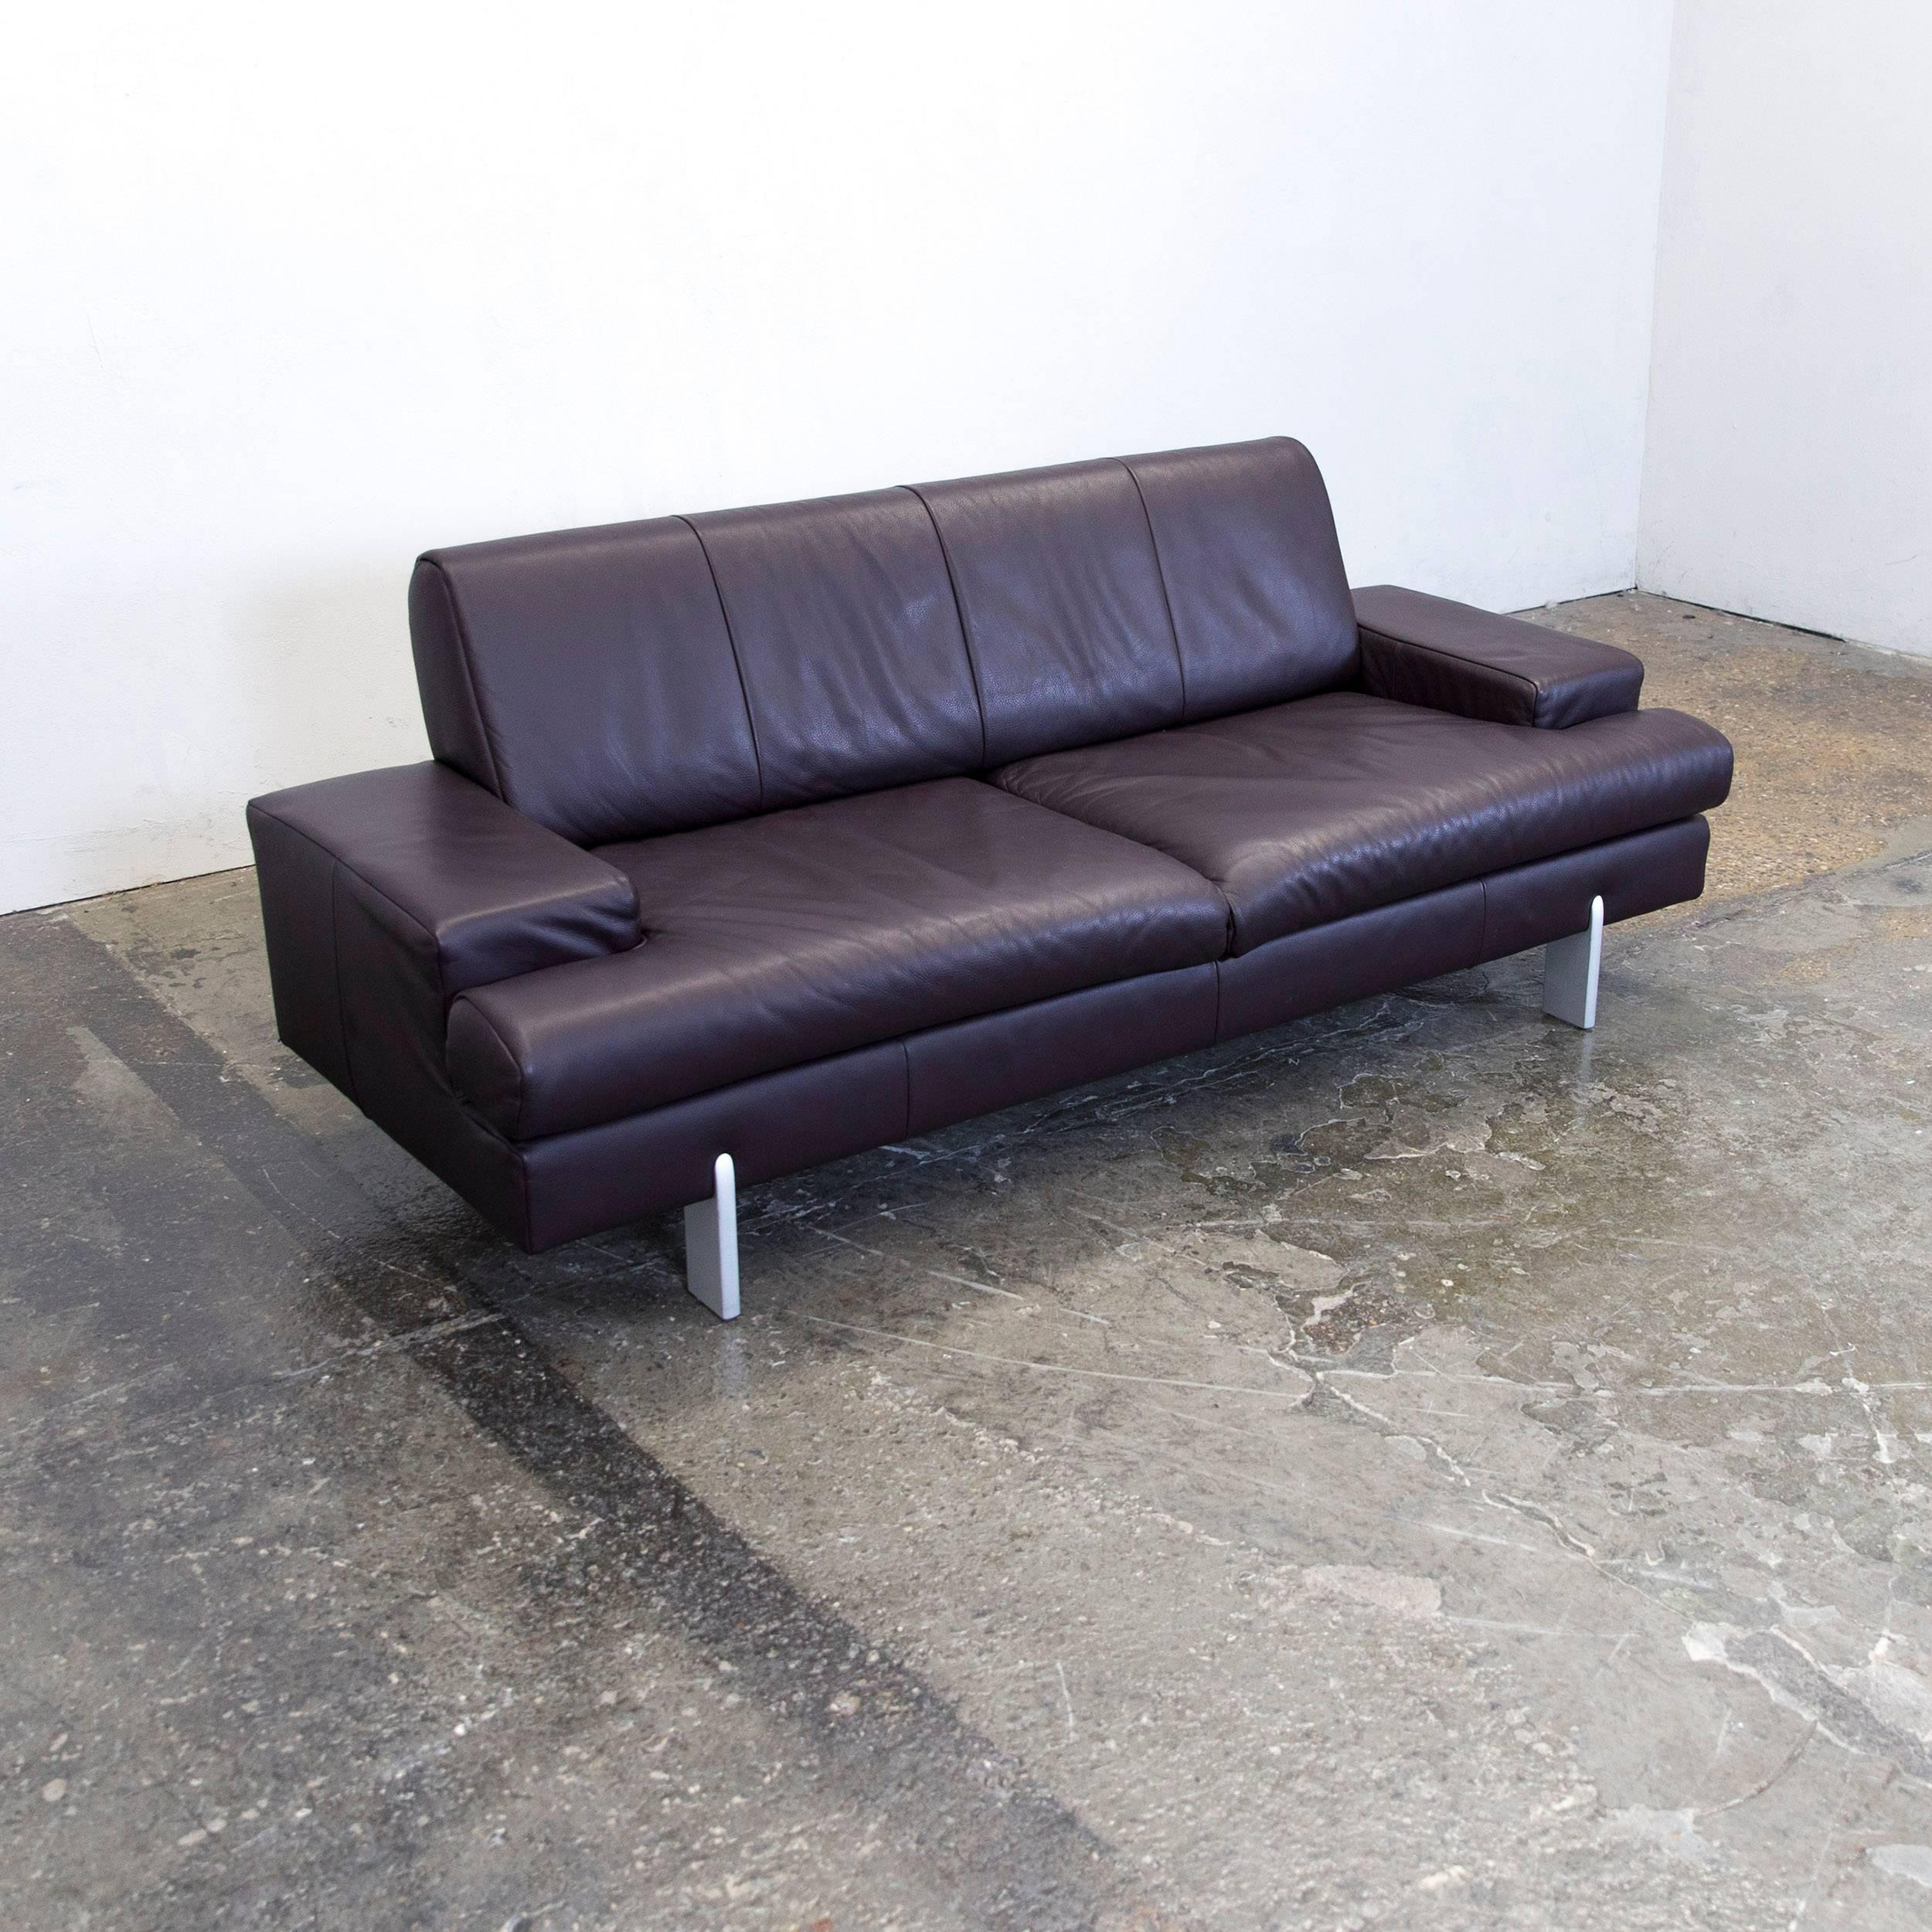 Bezaubernd Sofa Und Sessel Foto Von Musterring Lederfarben Excellent Musterring Mr With. Â«